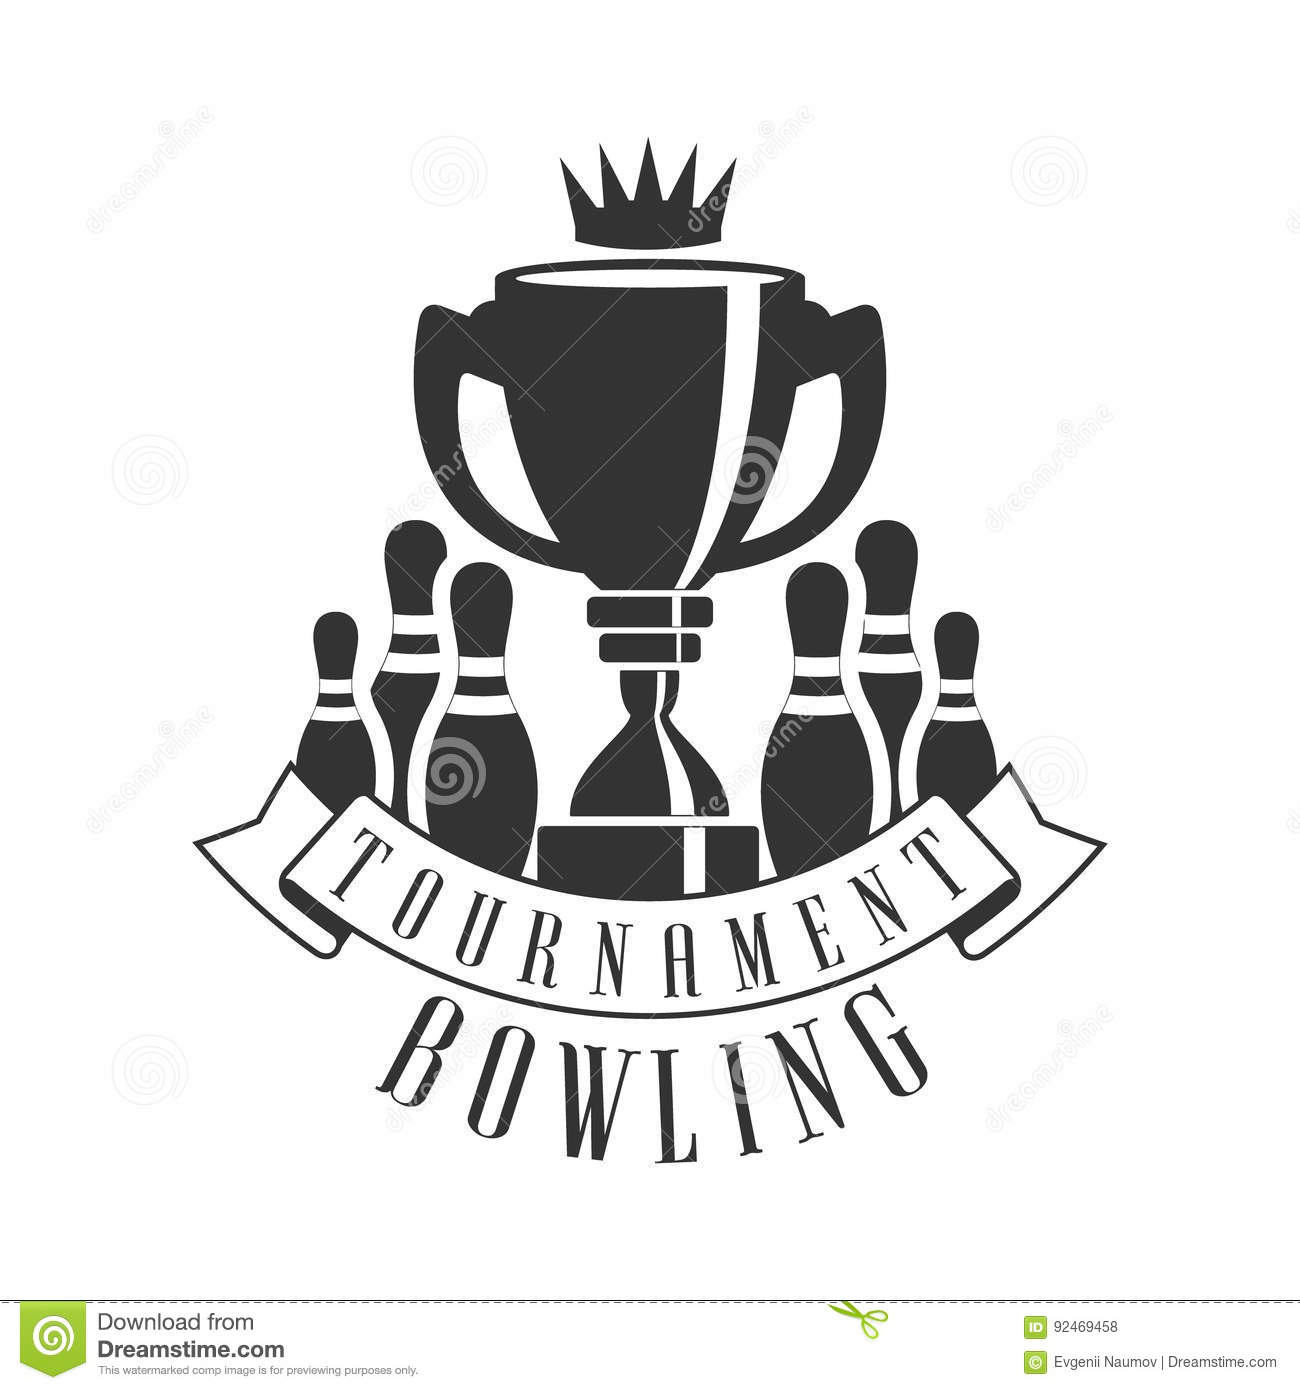 Tournament Bowling Vintage Label Black And White Vector